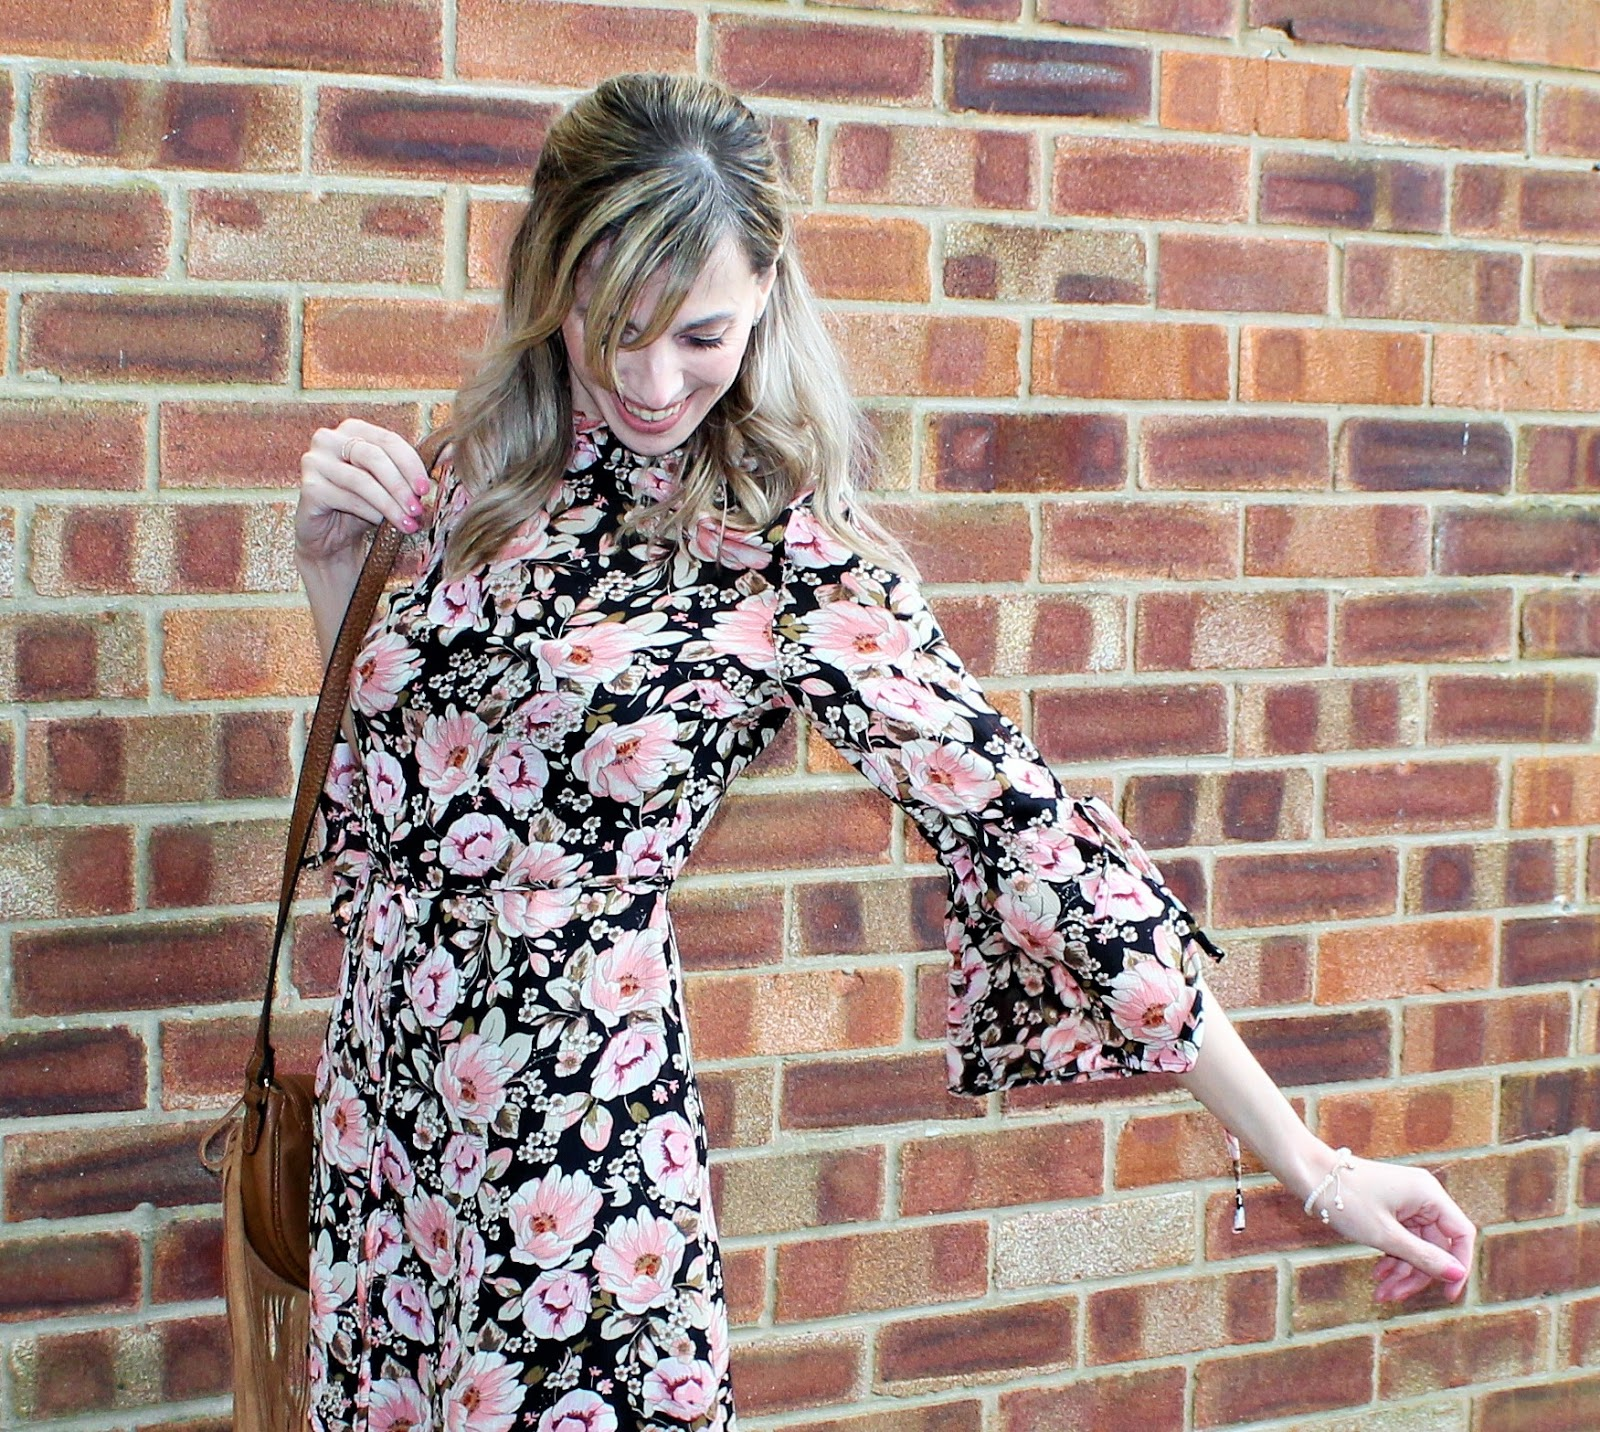 OOTD featuring a floral dress from Topshop and beaded bracelet from Lola Rose - 1